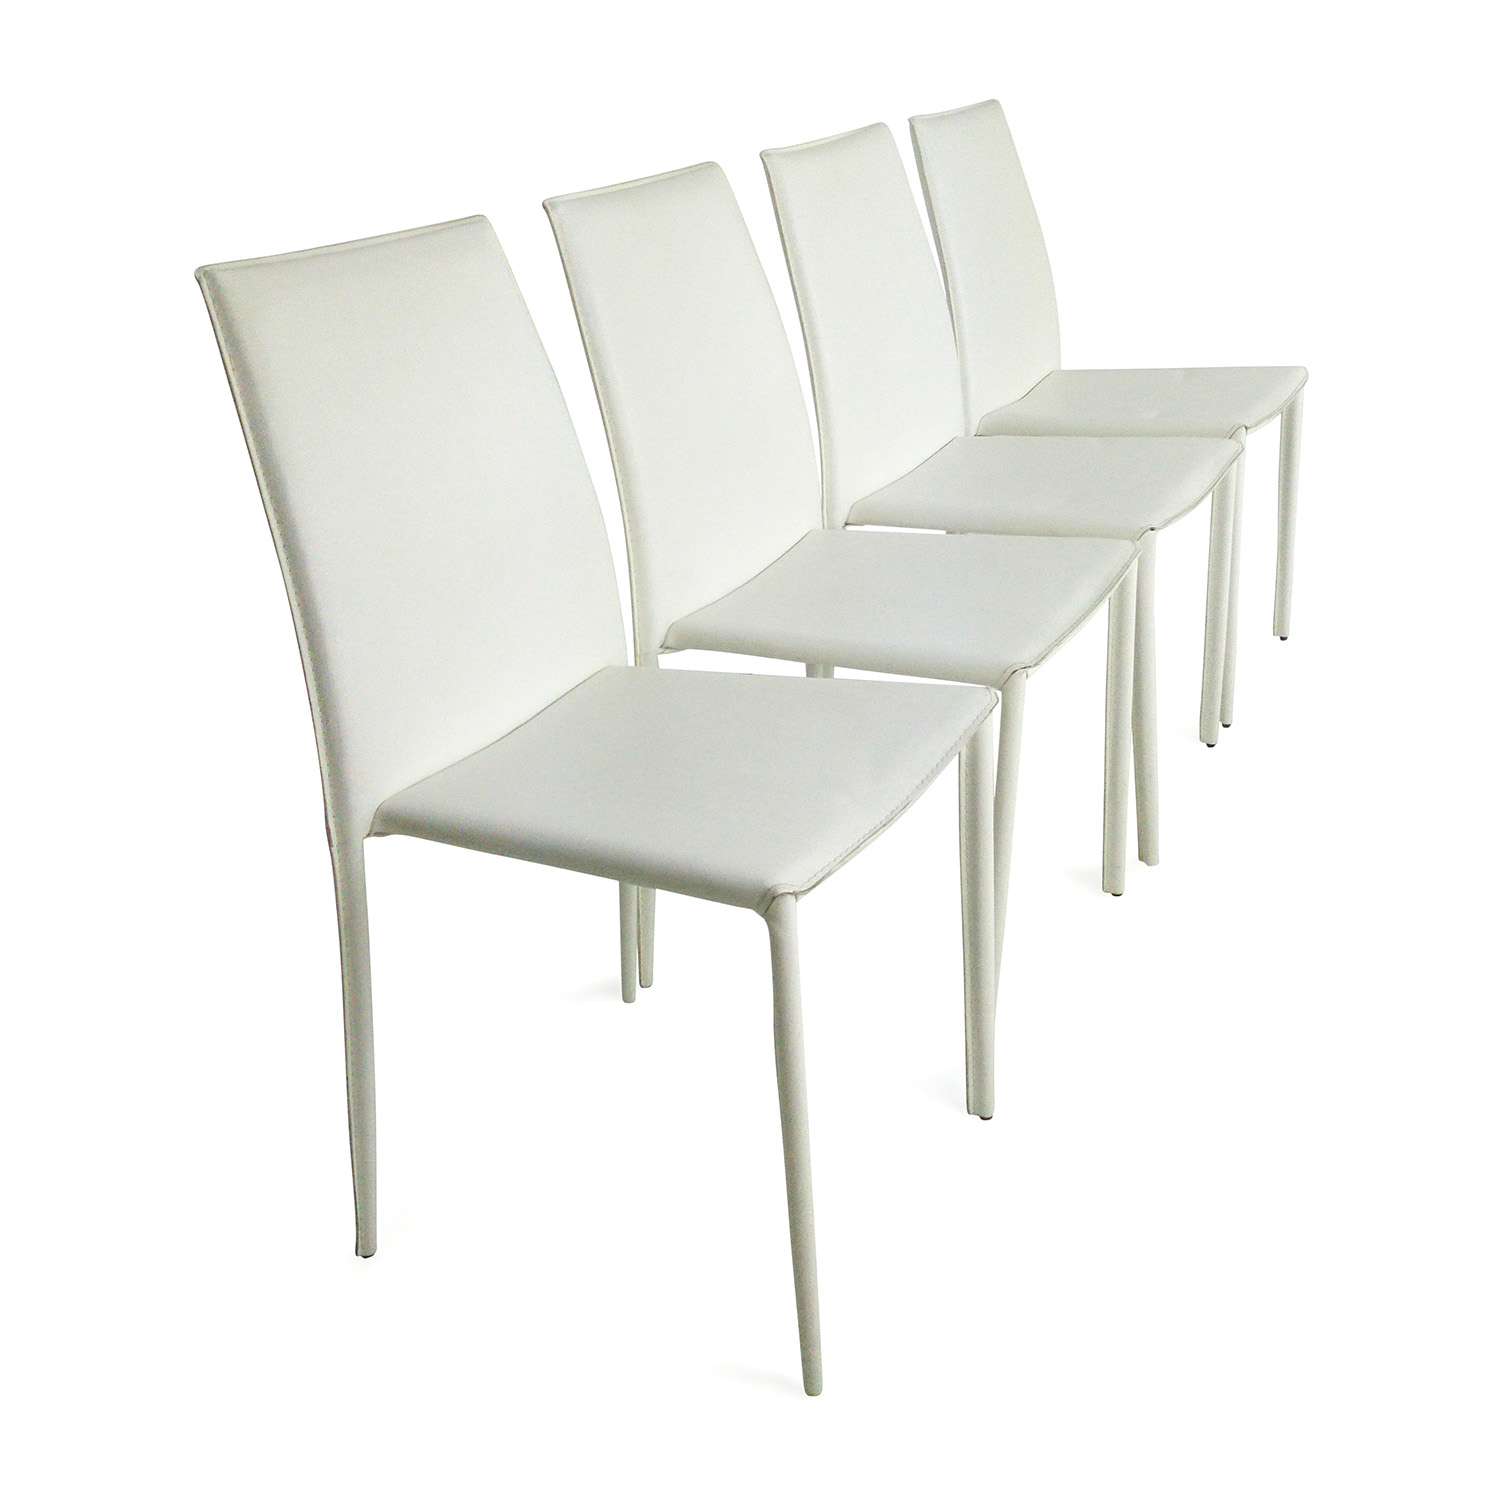 all modern all modern  dining chairs .  off  all modern all modern  dining chairs  chairs